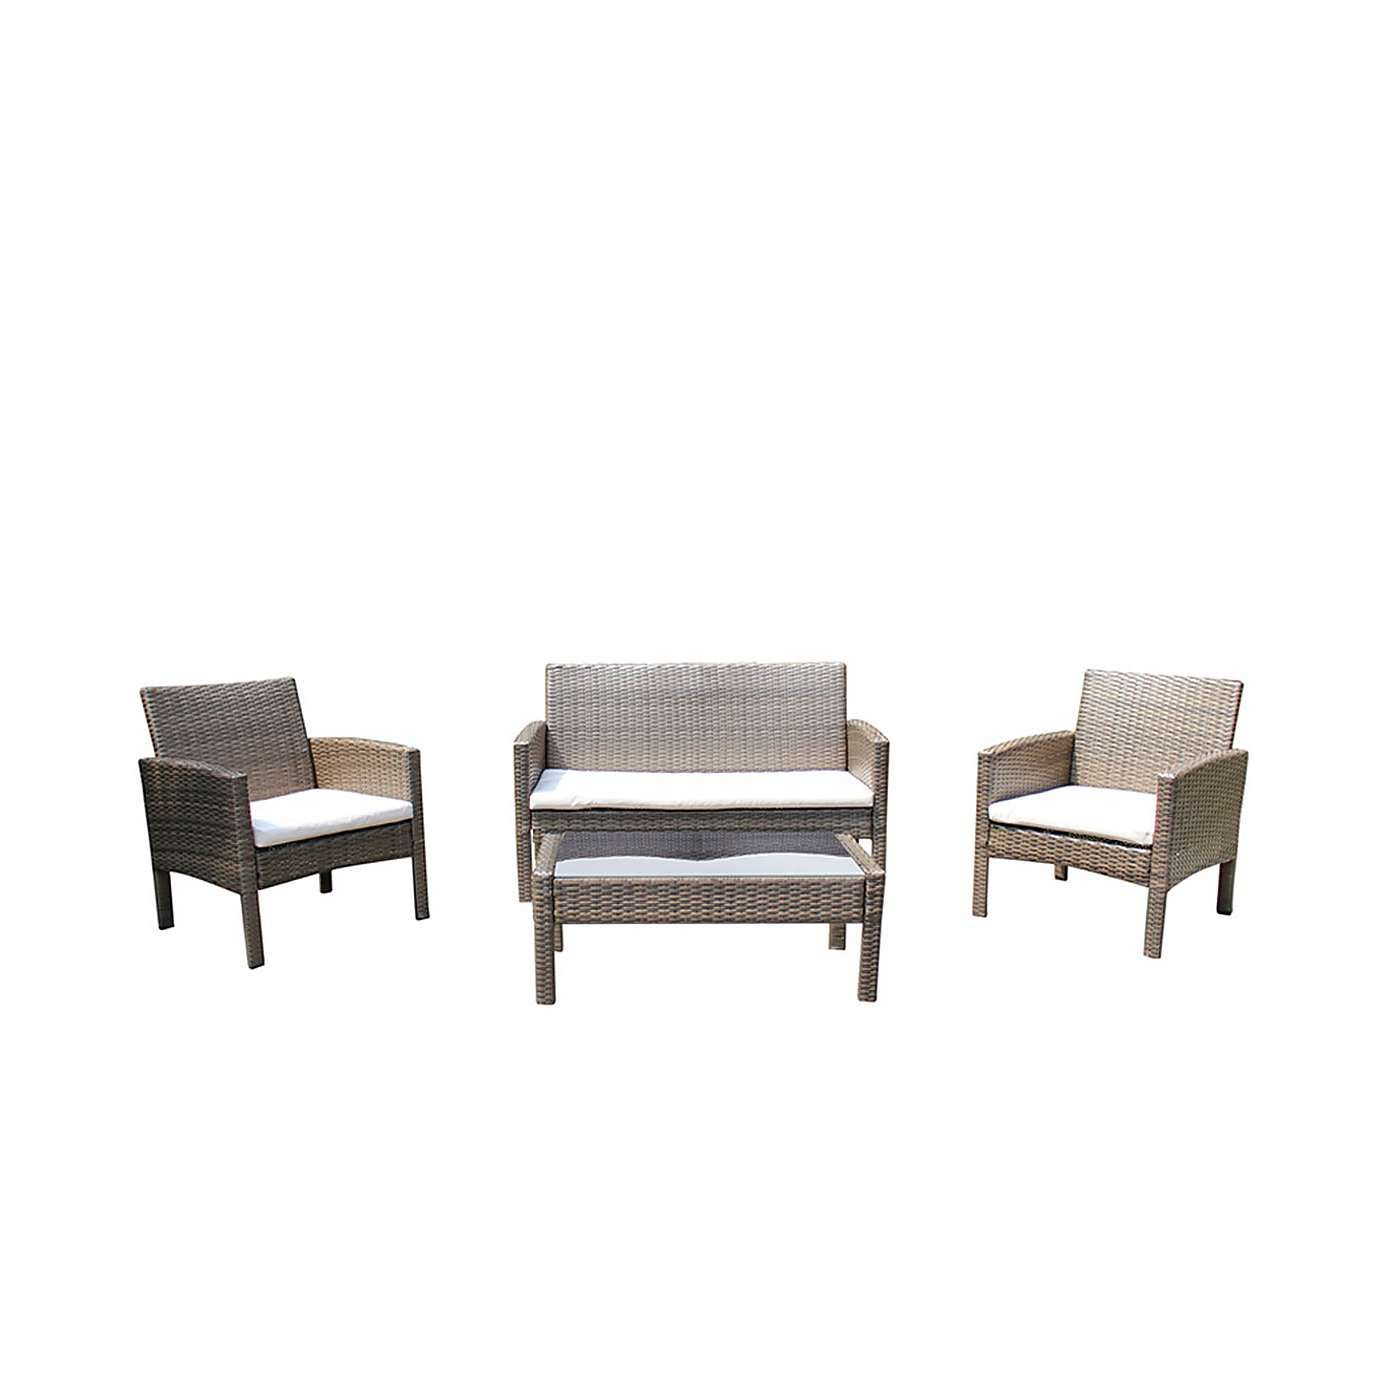 4 Seat Sofa Lounge Set Dunelm Garden Ideas